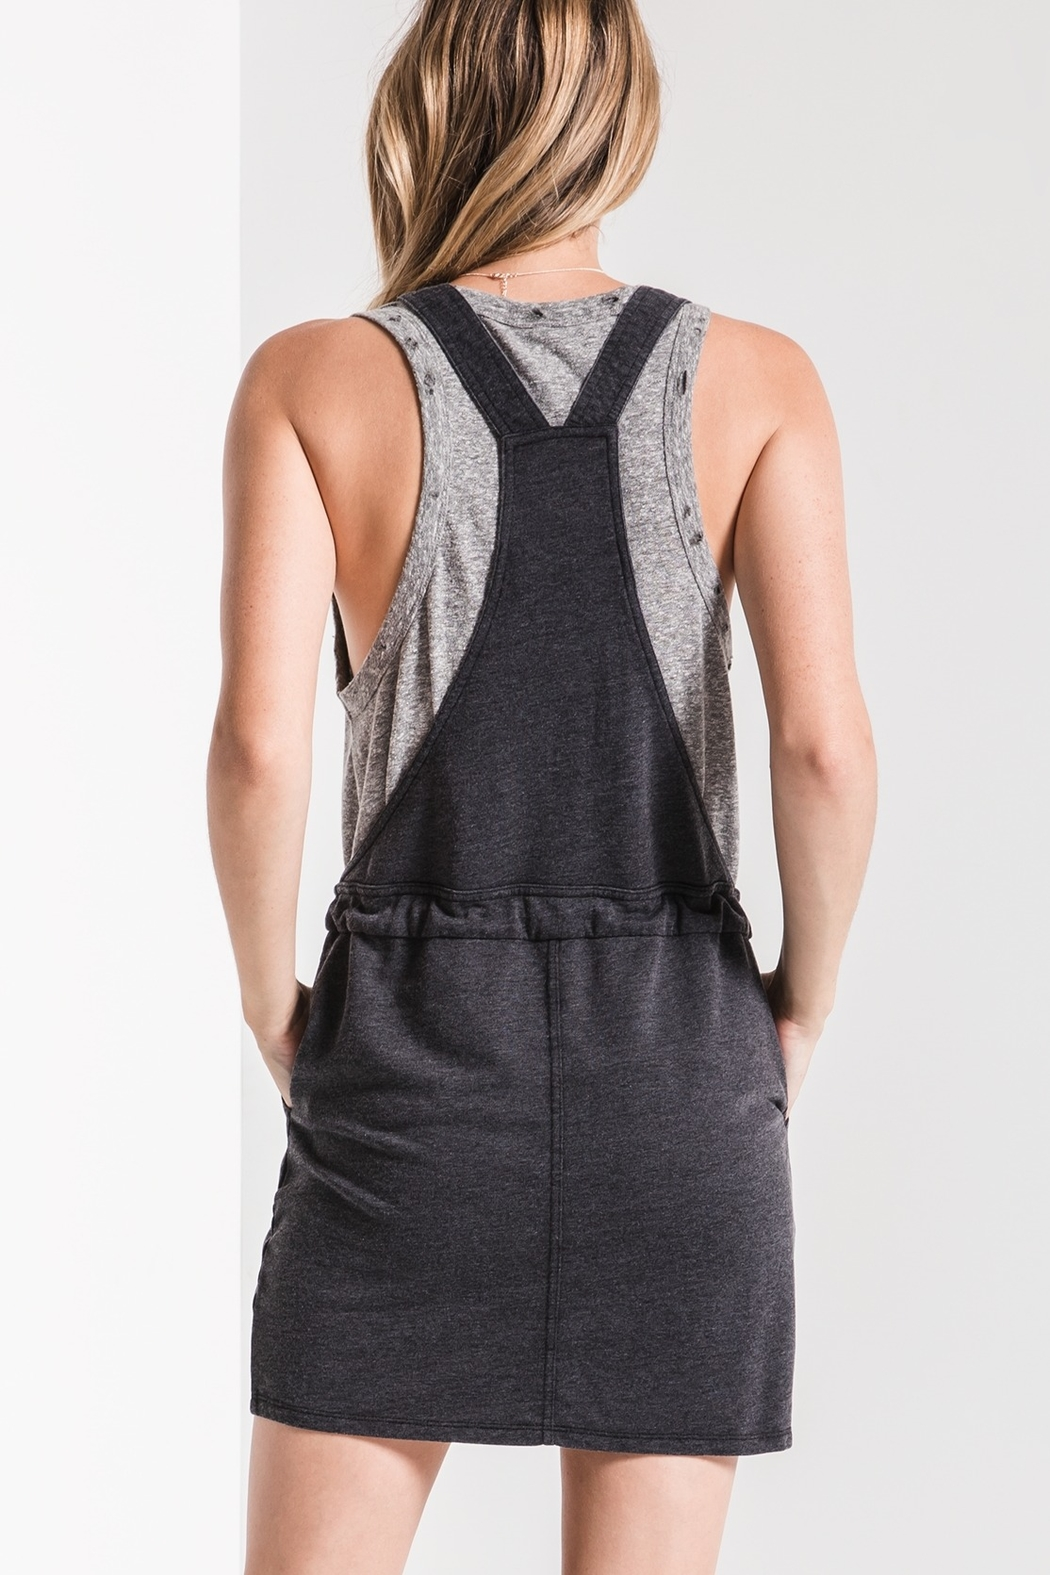 z supply The Skirt Overall - Side Cropped Image